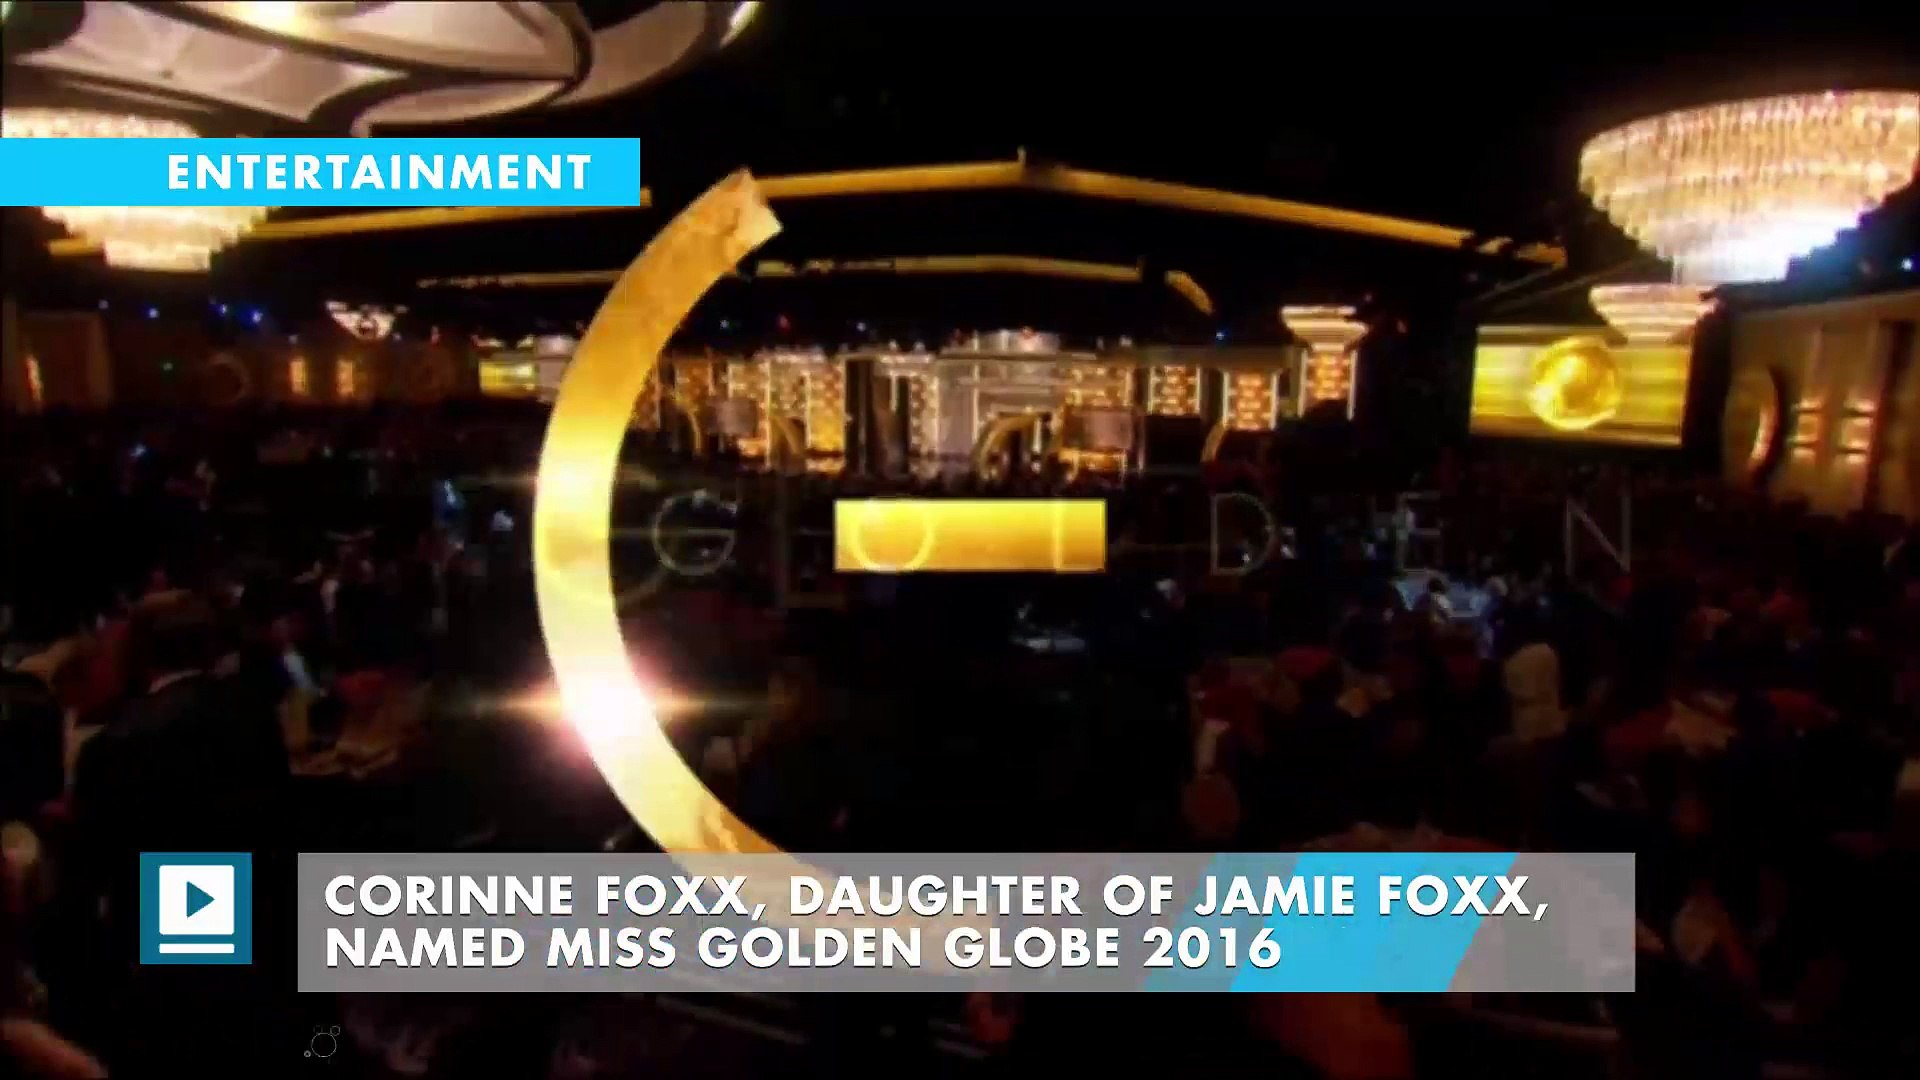 Corinne Foxx, Daughter of Jamie Foxx, Named Miss Golden Globe 2016